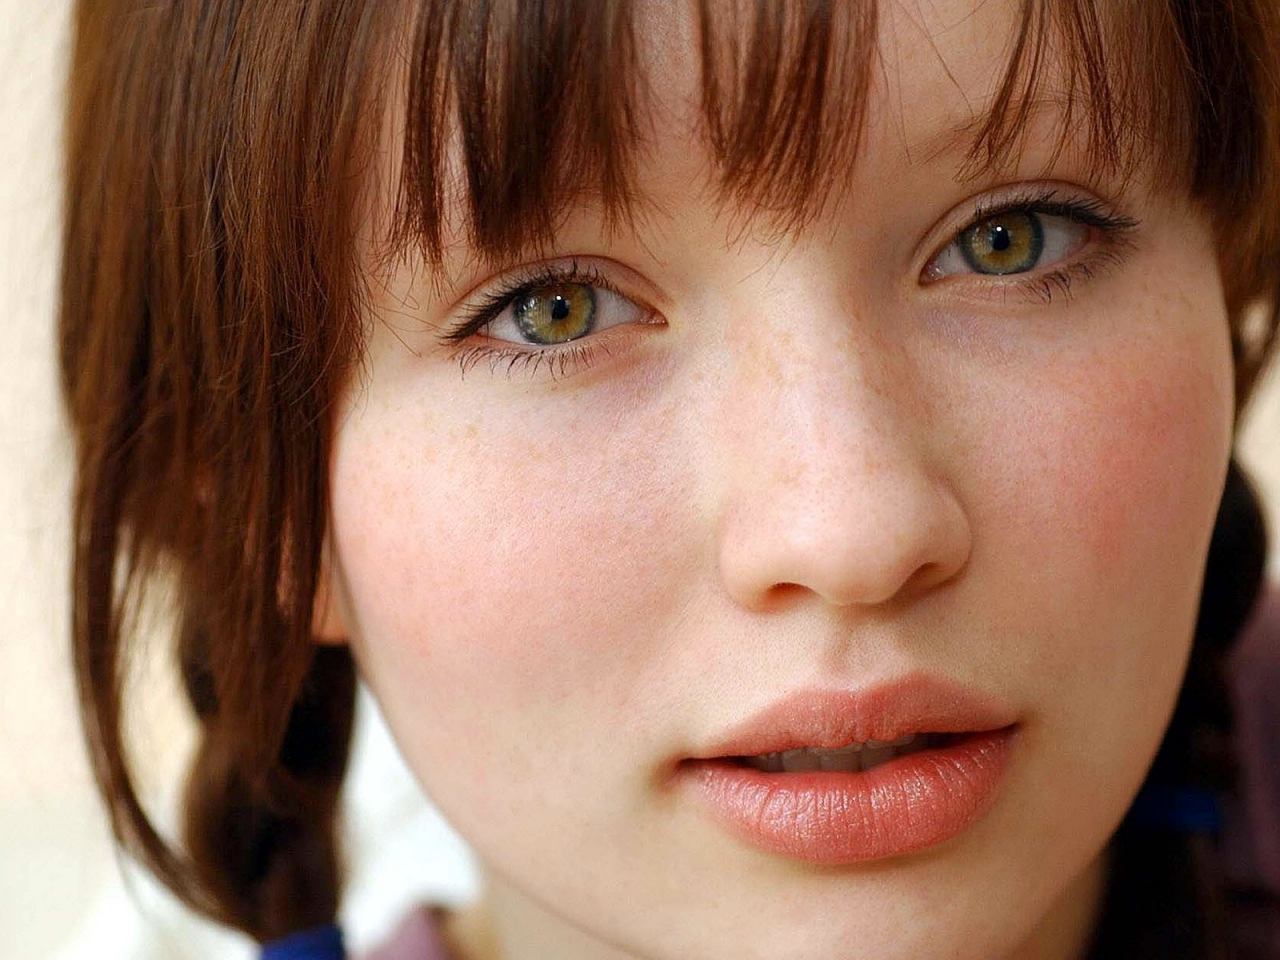 Emily Browning for 1280 x 960 resolution